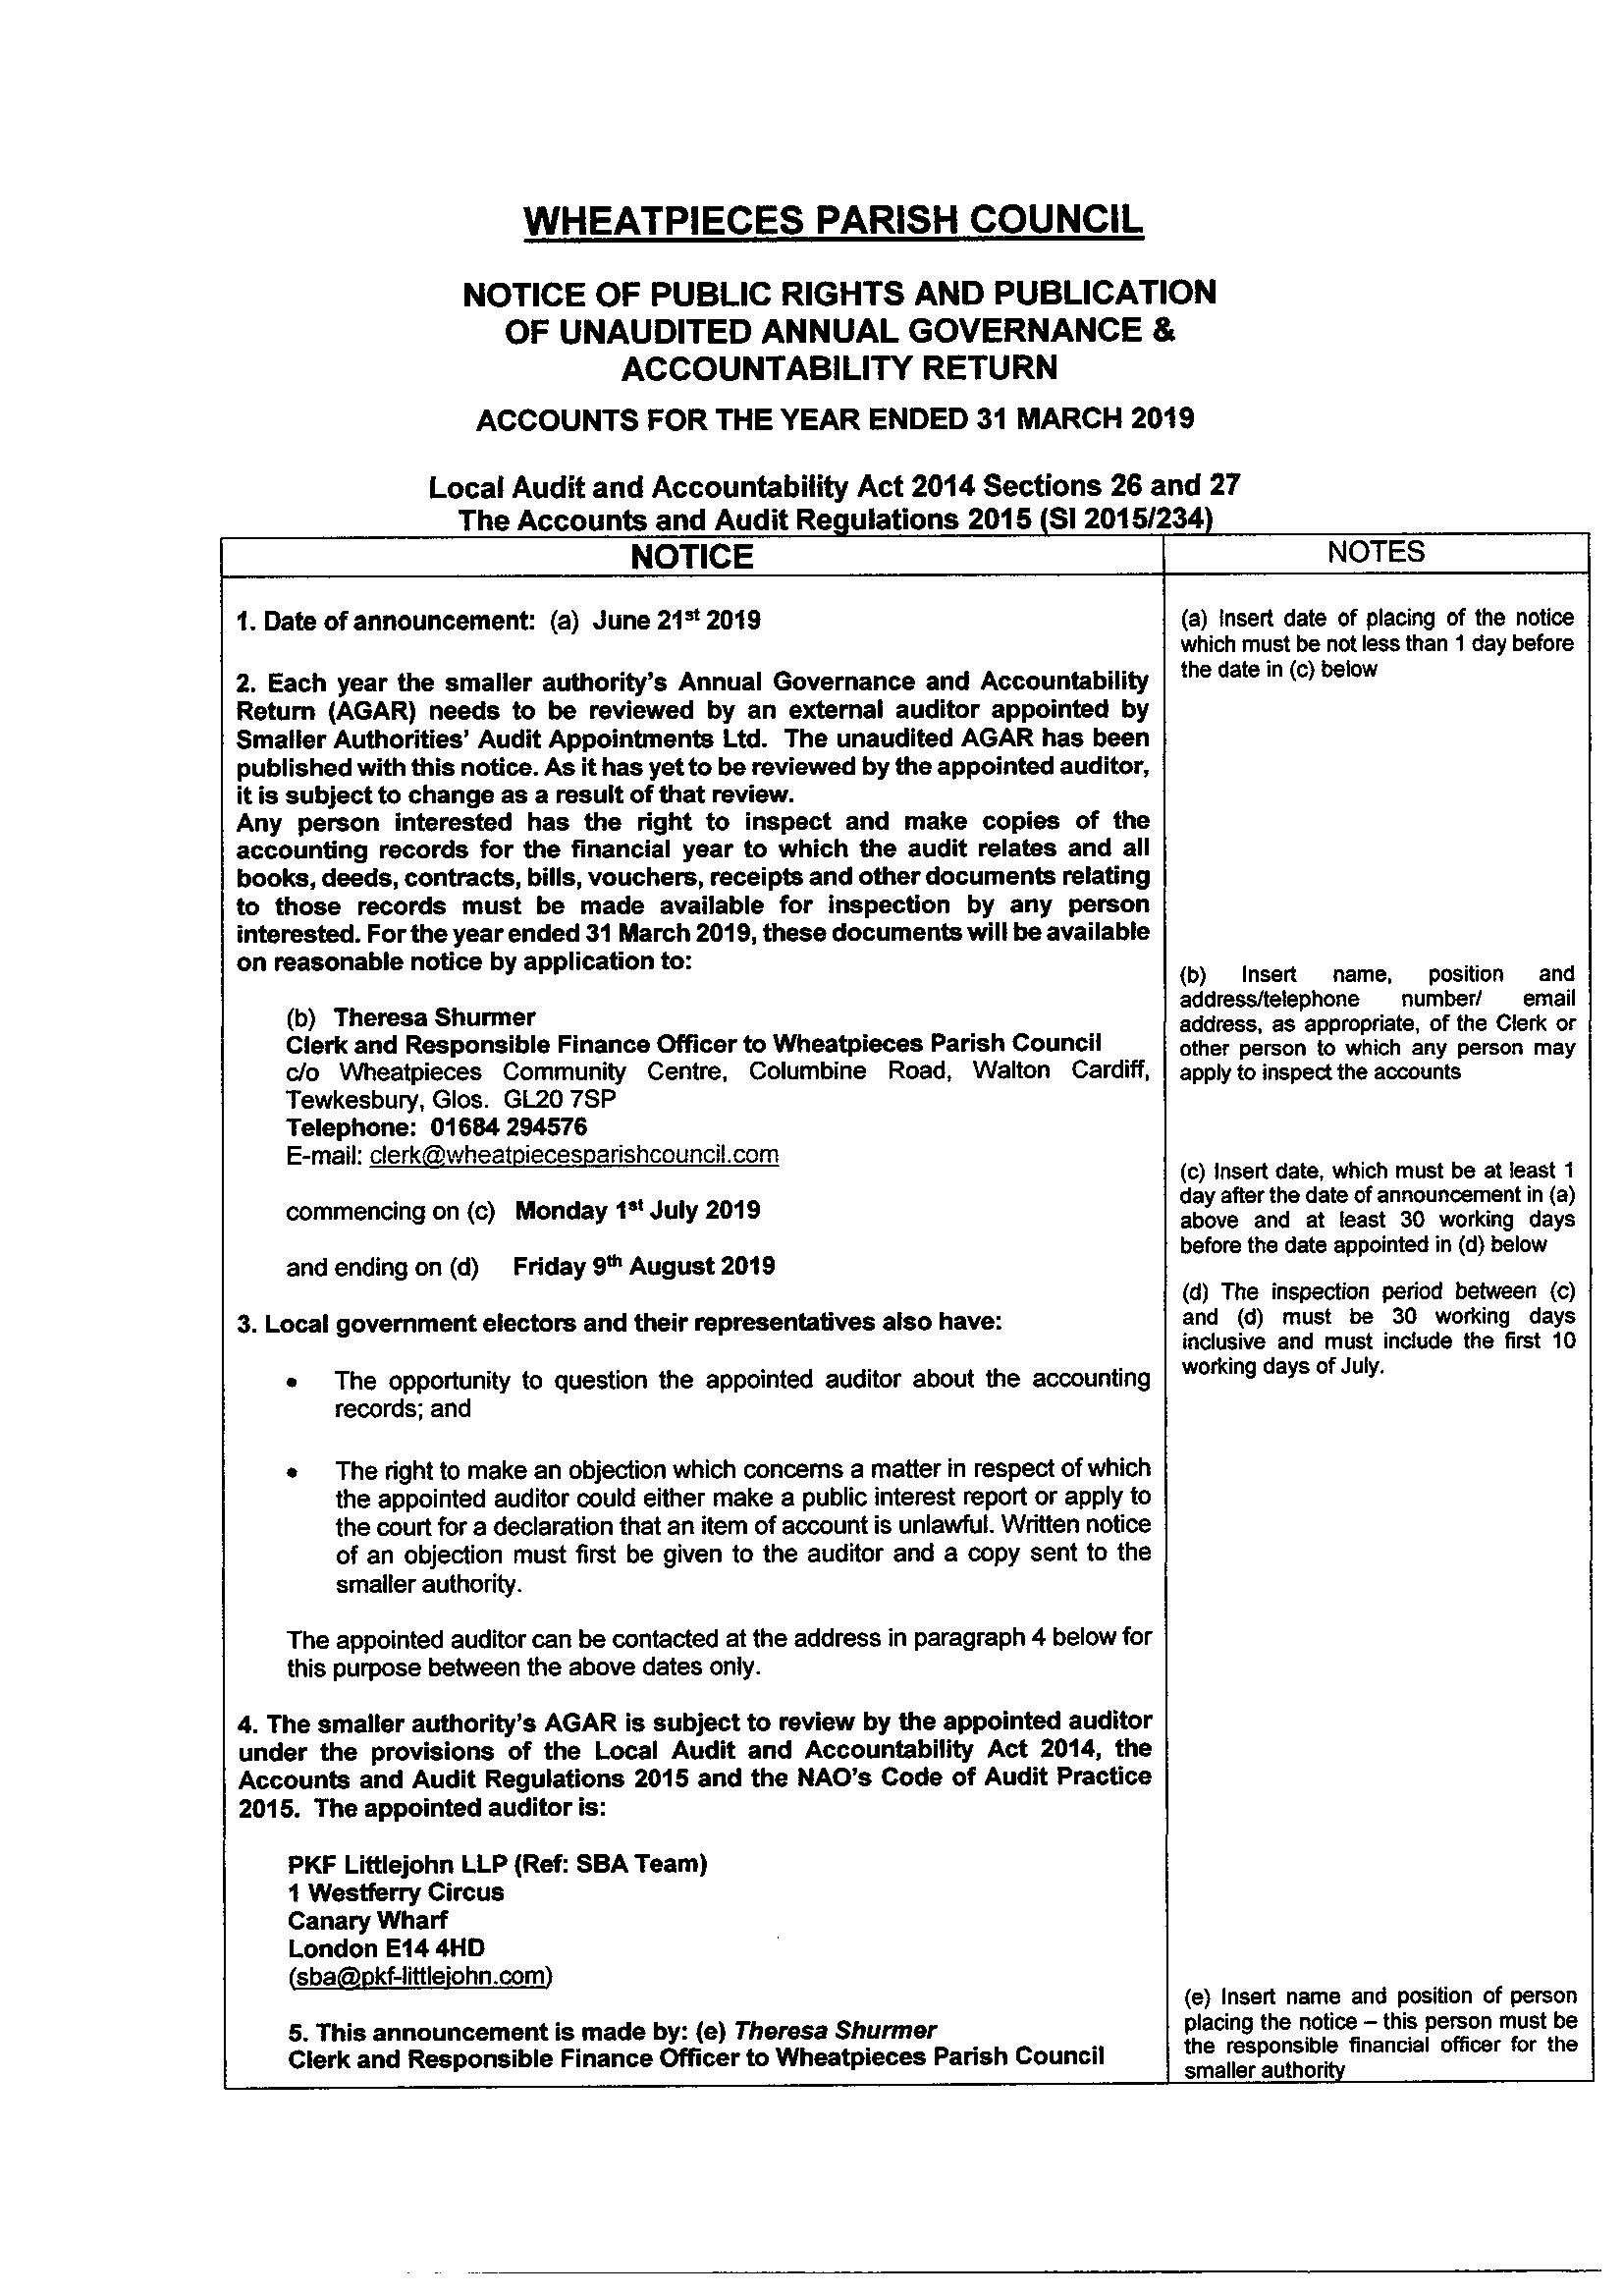 Notice of Public Rights and Publication of Unaudited Annual